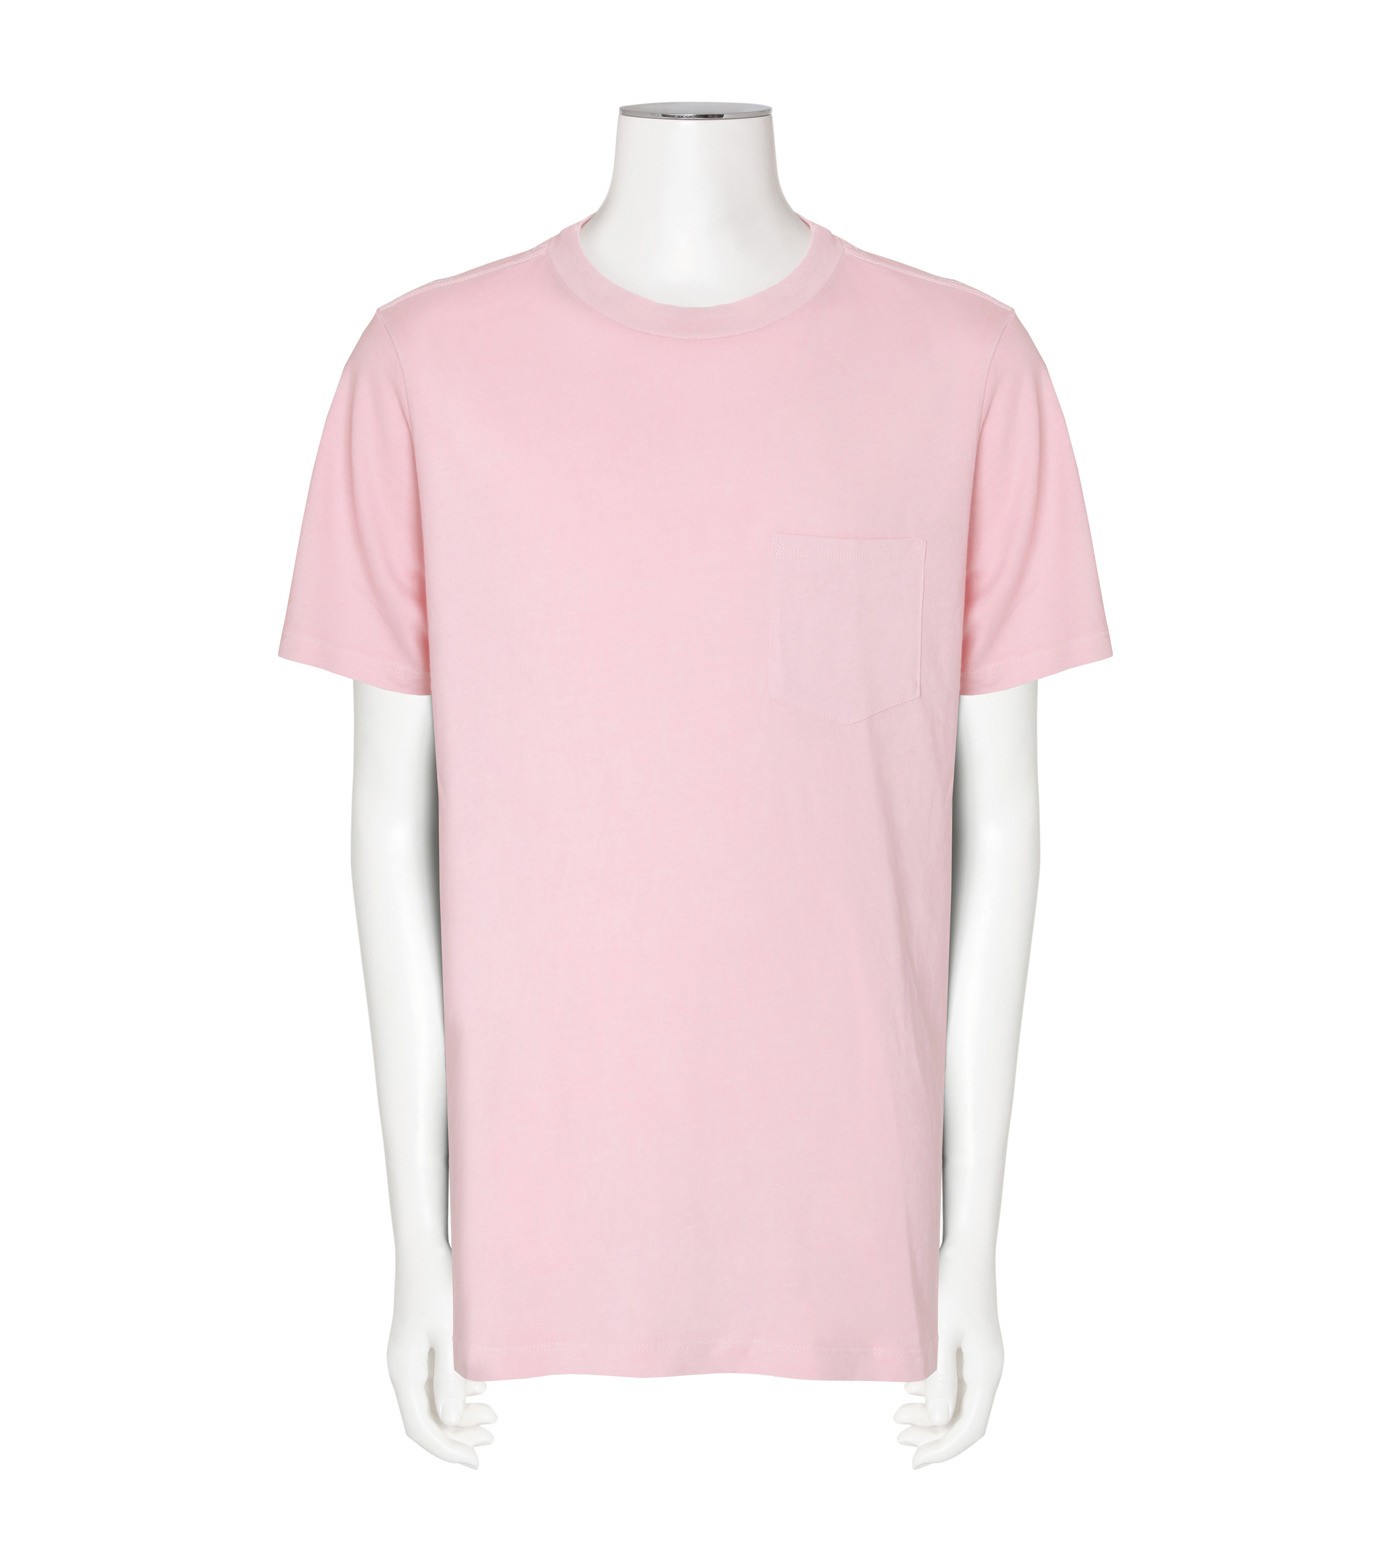 T by Alexander Wang(ティーバイ アレキサンダーワン)のCrew Neck T-PINK(カットソー/cut and sewn)-500211F16-72 拡大詳細画像1